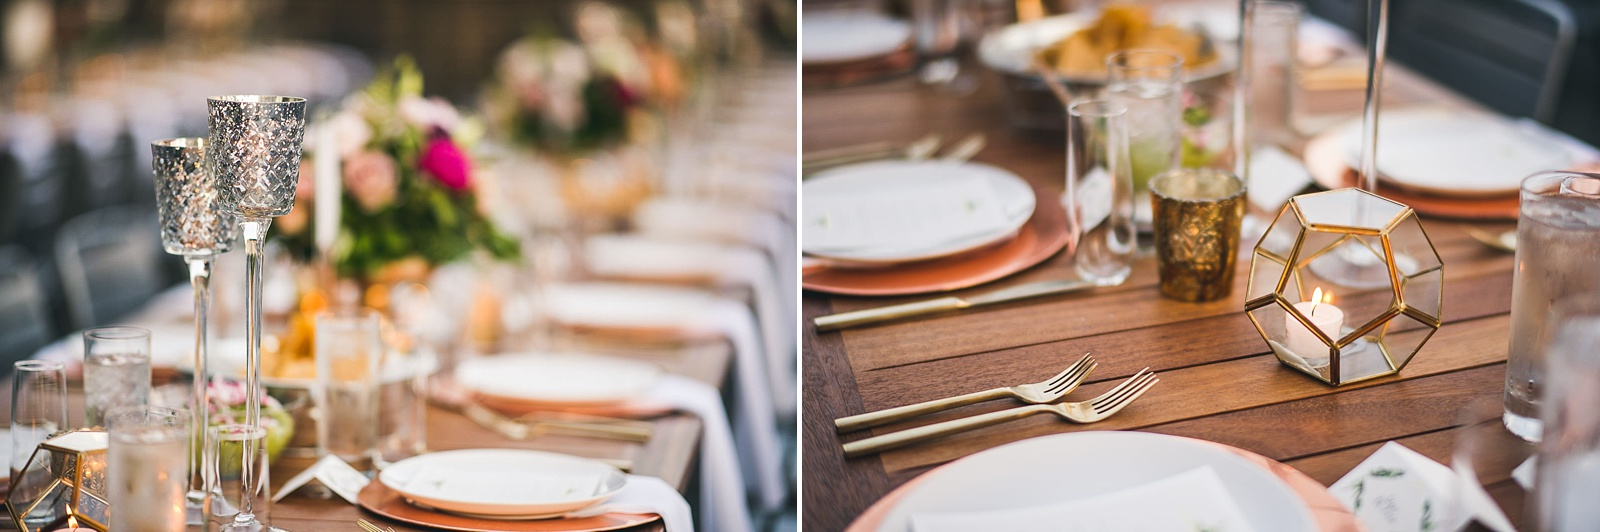 46 wedding setting inspo - Morgan's on Fulton Wedding Photos // Jessica + Bill